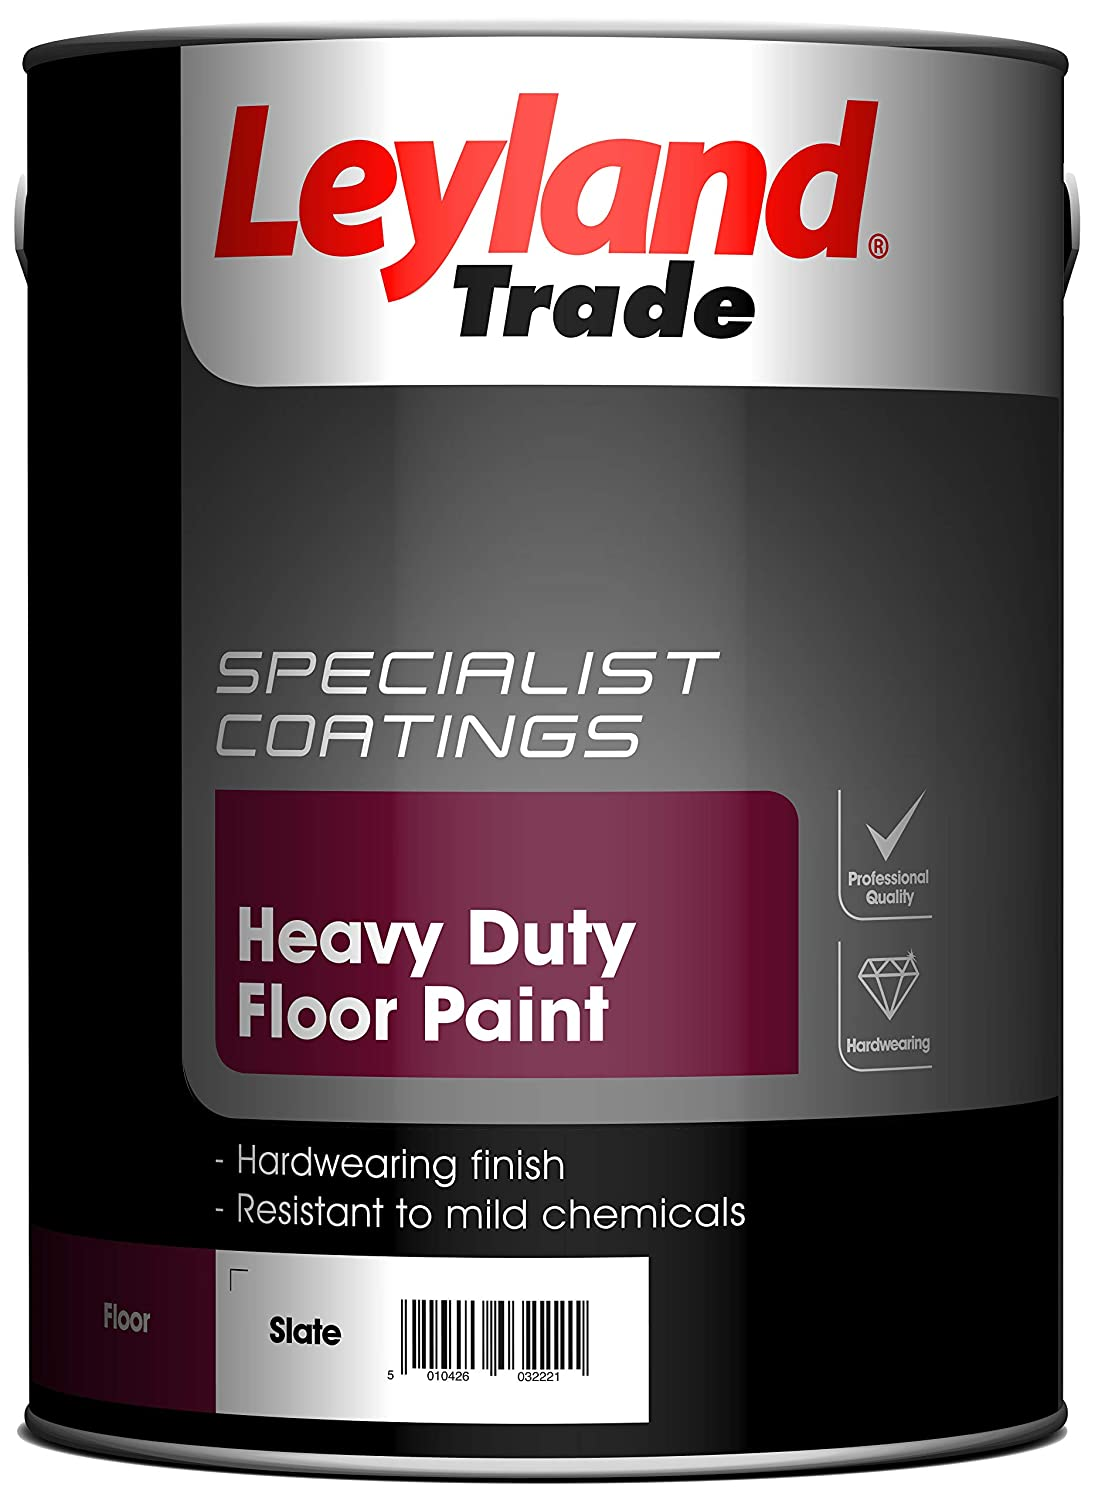 Leyland Trade 264619 Heavy Duty Floor Paint, Slate, 5 PPG